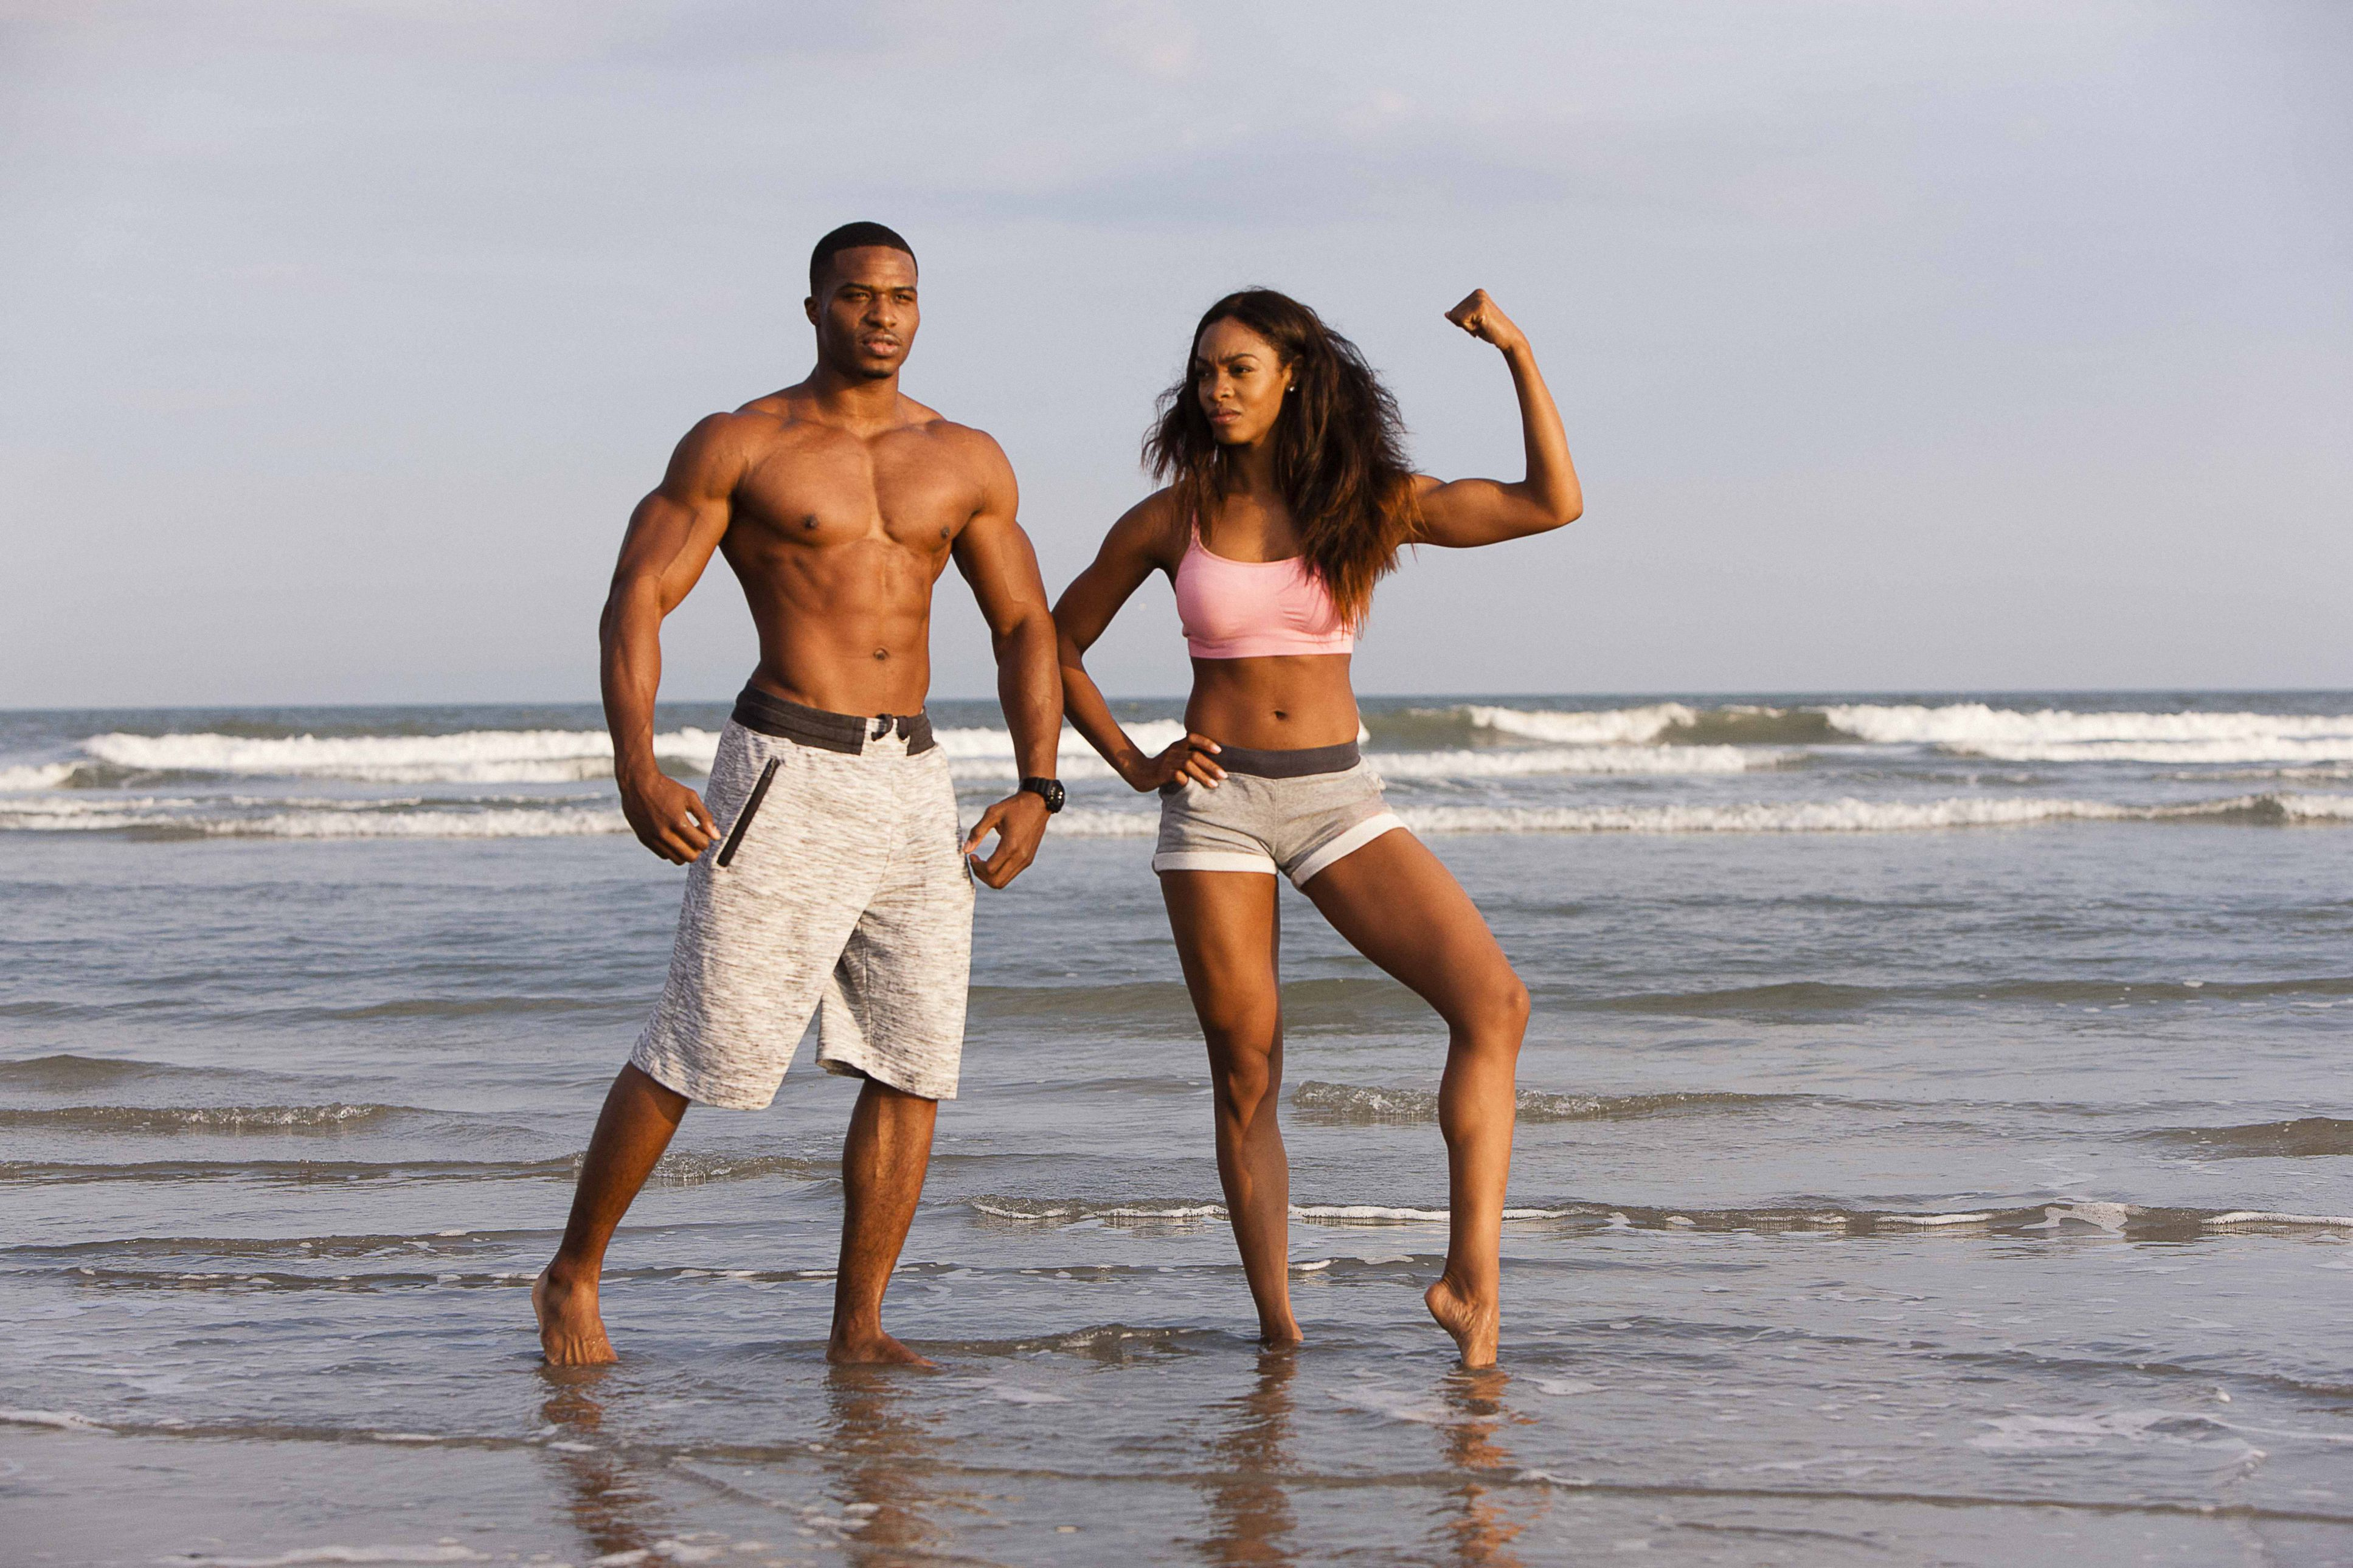 Couple flexing muscles on the beach